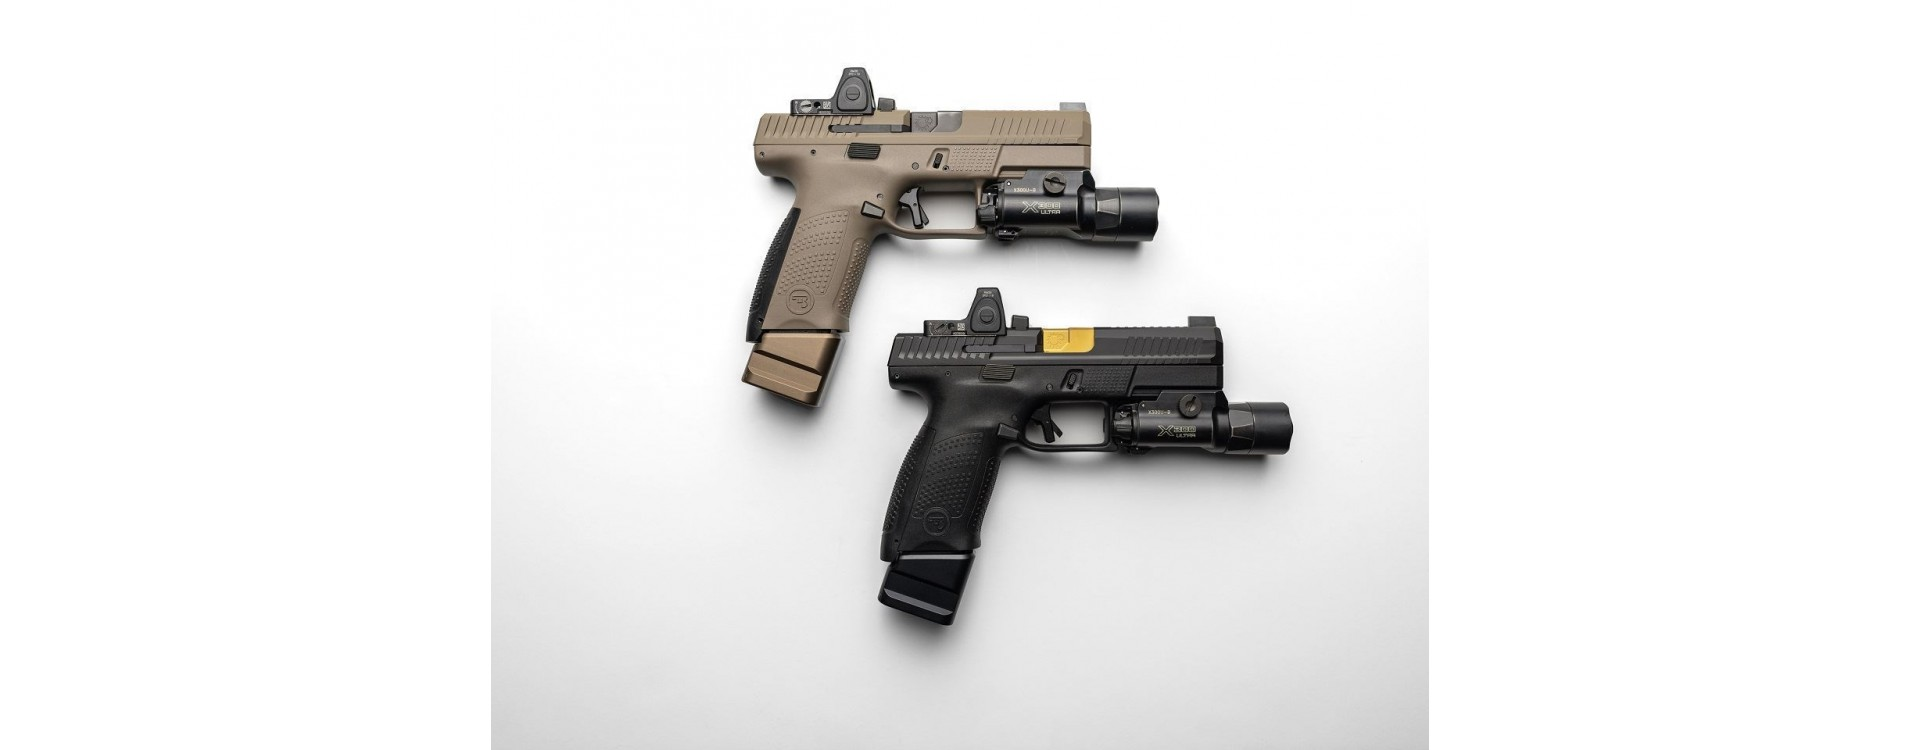 Extended magazines